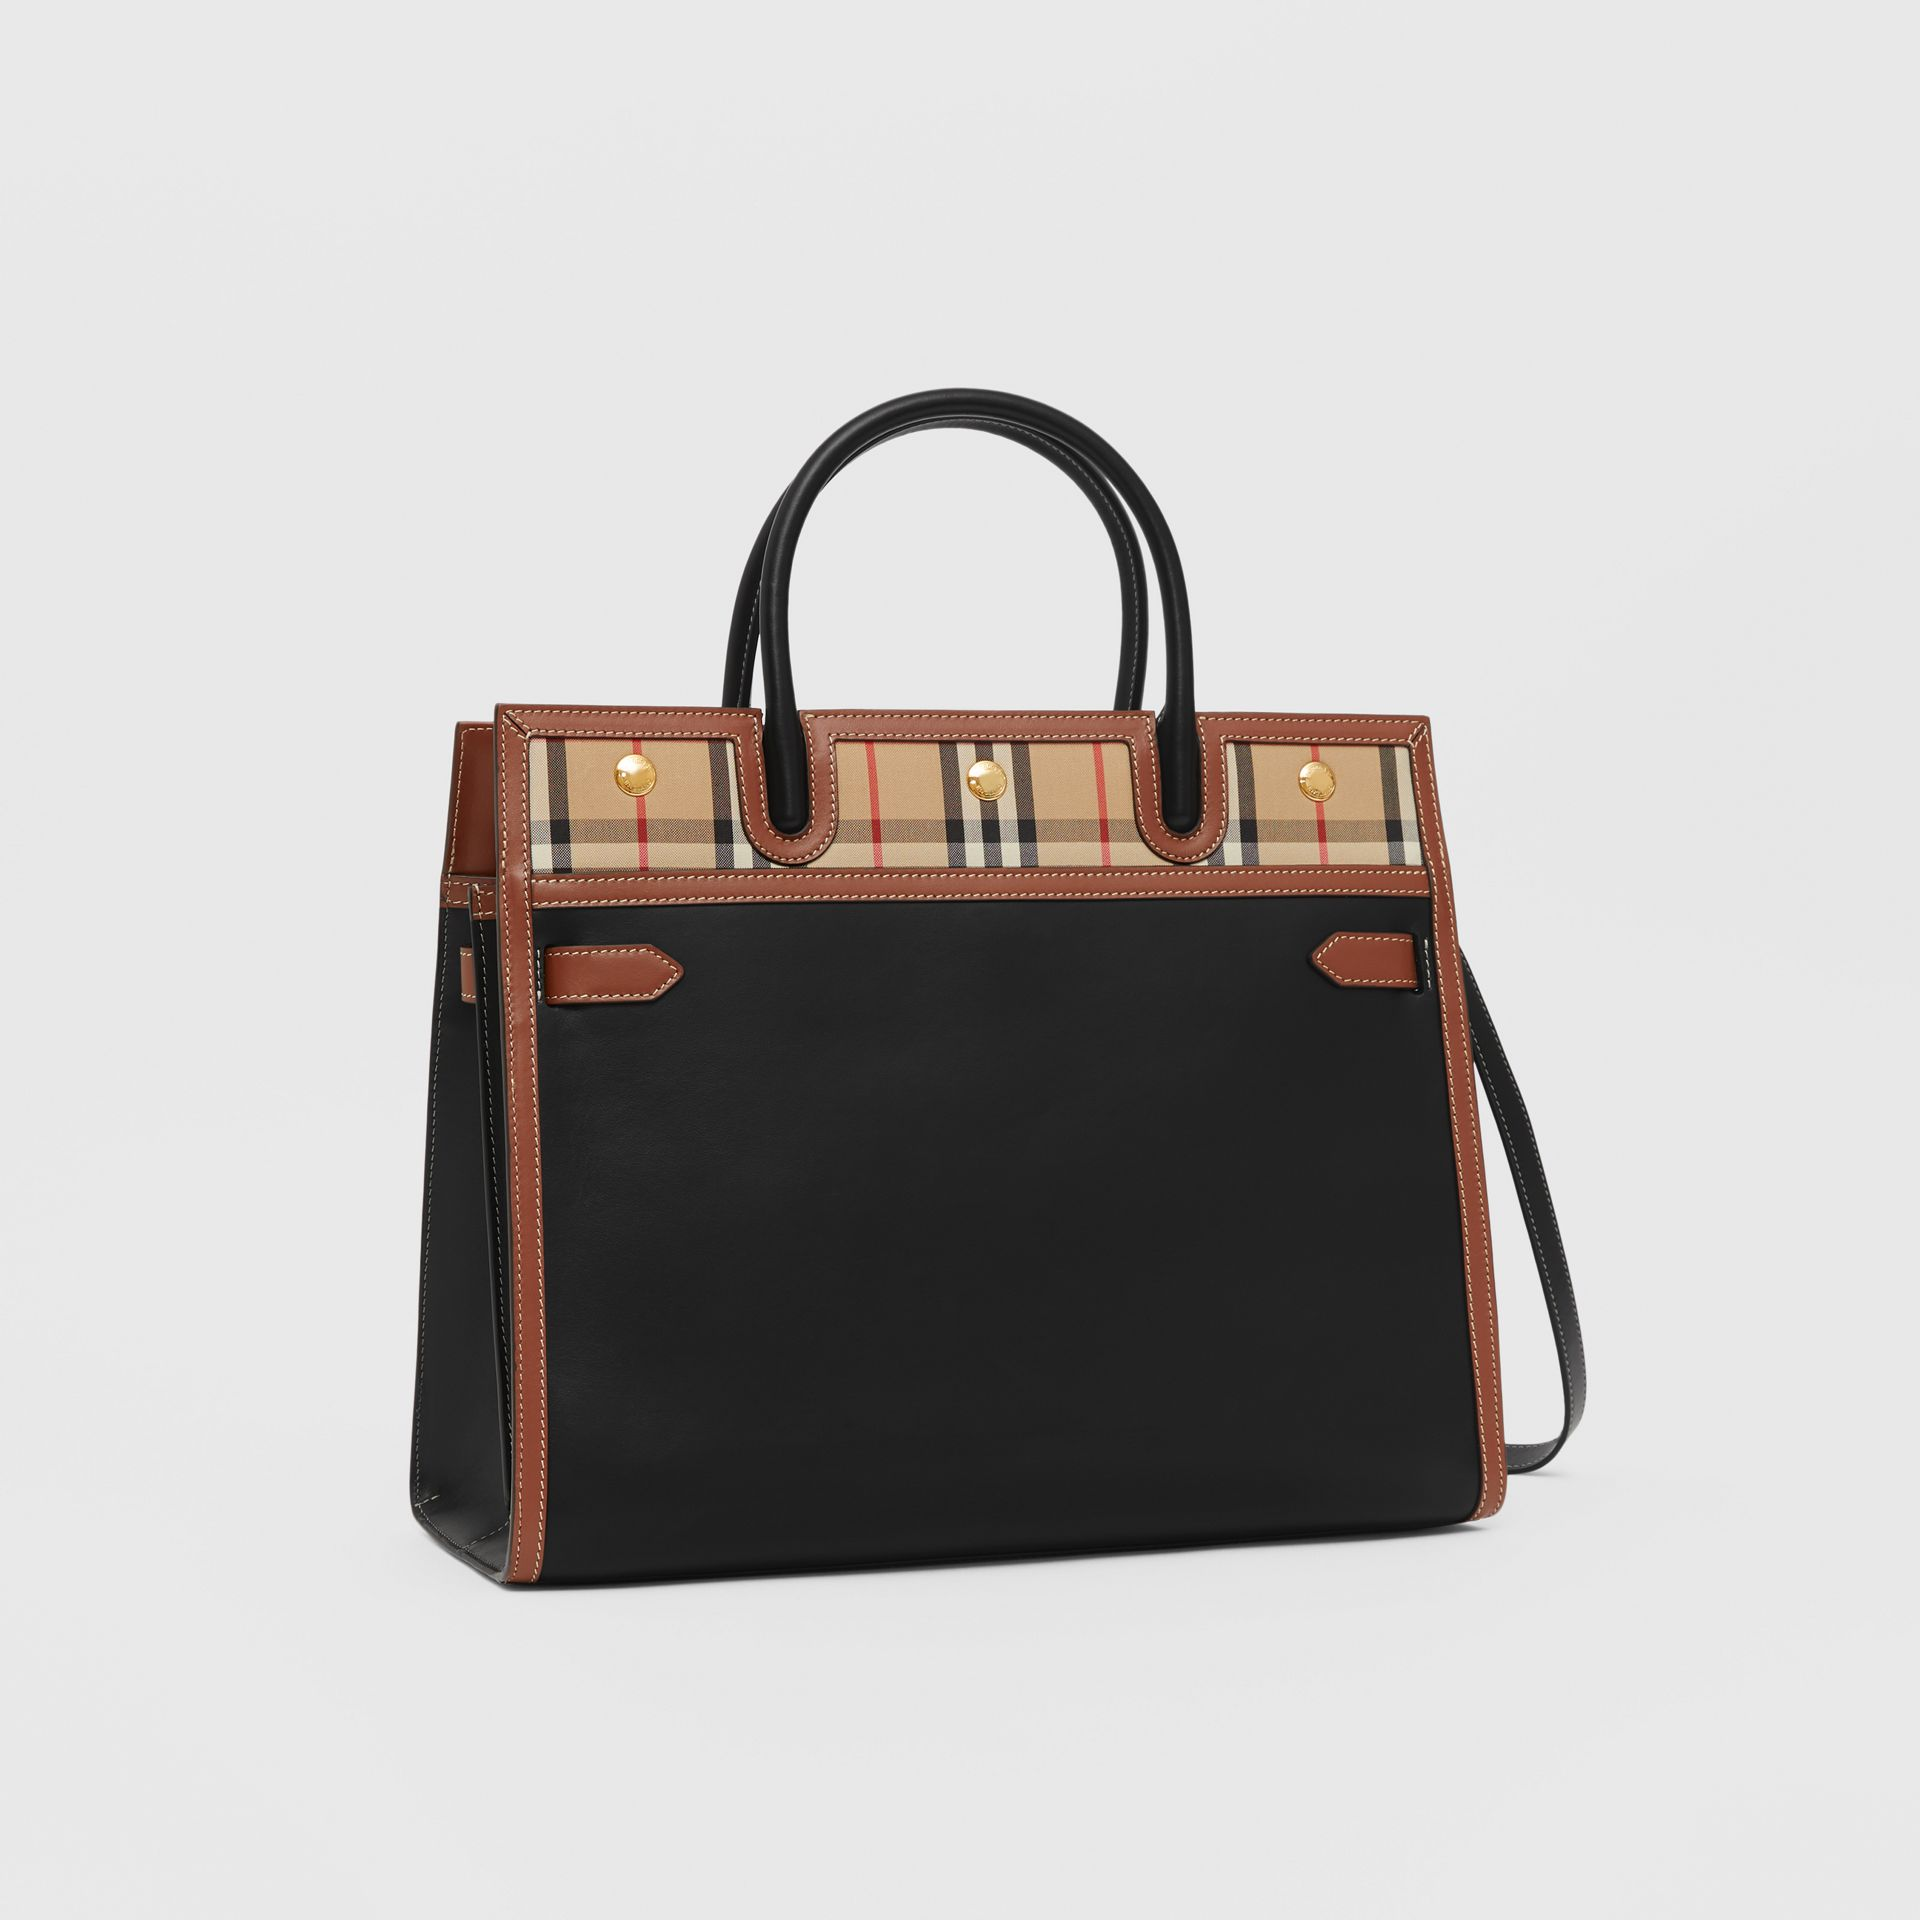 Medium Leather and Vintage Check Two-handle Title Bag in Black - Women | Burberry United Kingdom - gallery image 6